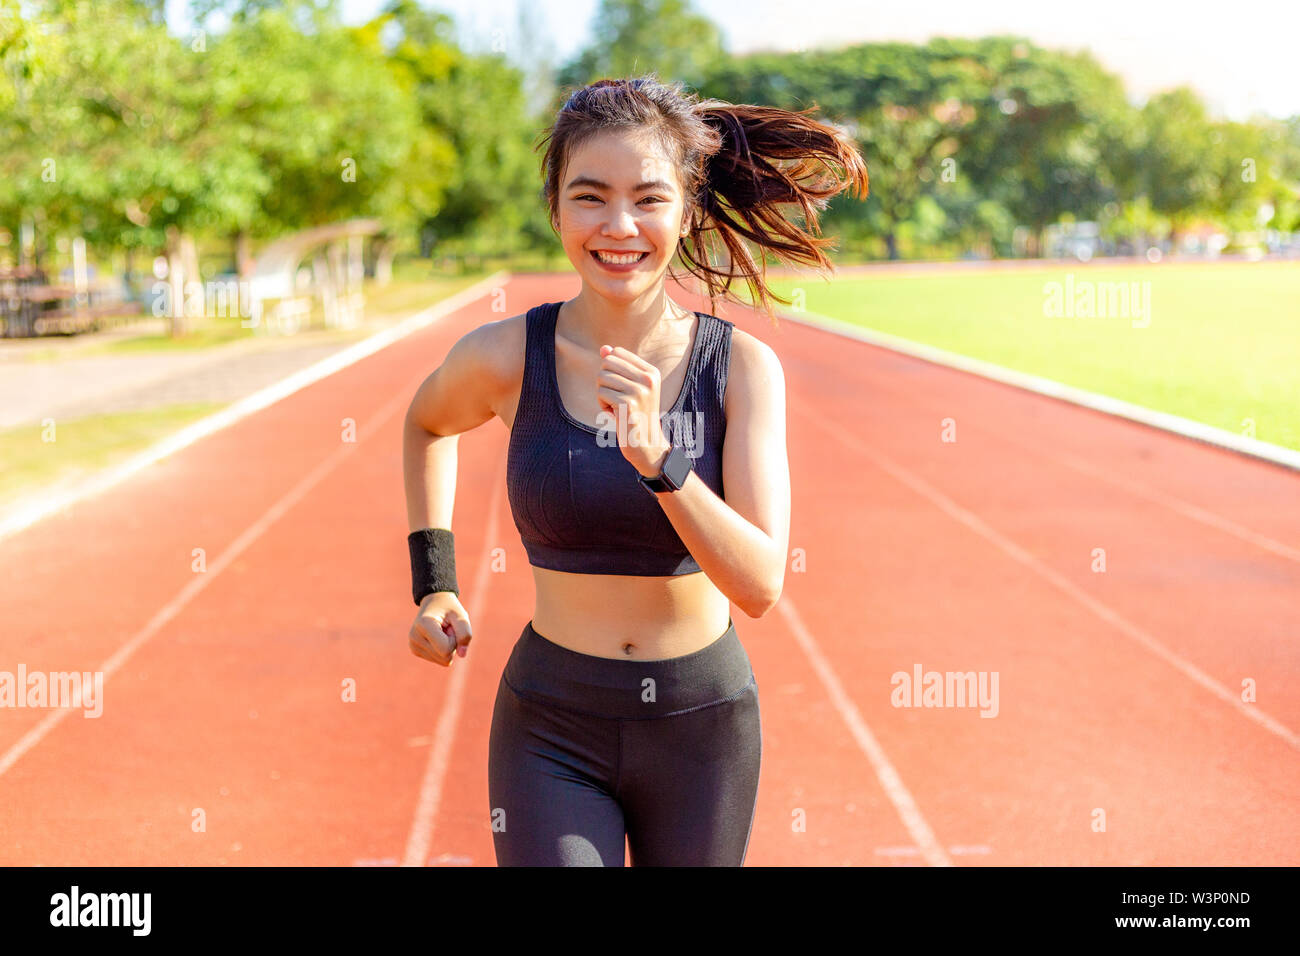 Beautiful happy young Asian woman running for her morning exercise at a running track with blurred track and trees in background, healthy lifestyle - Stock Image